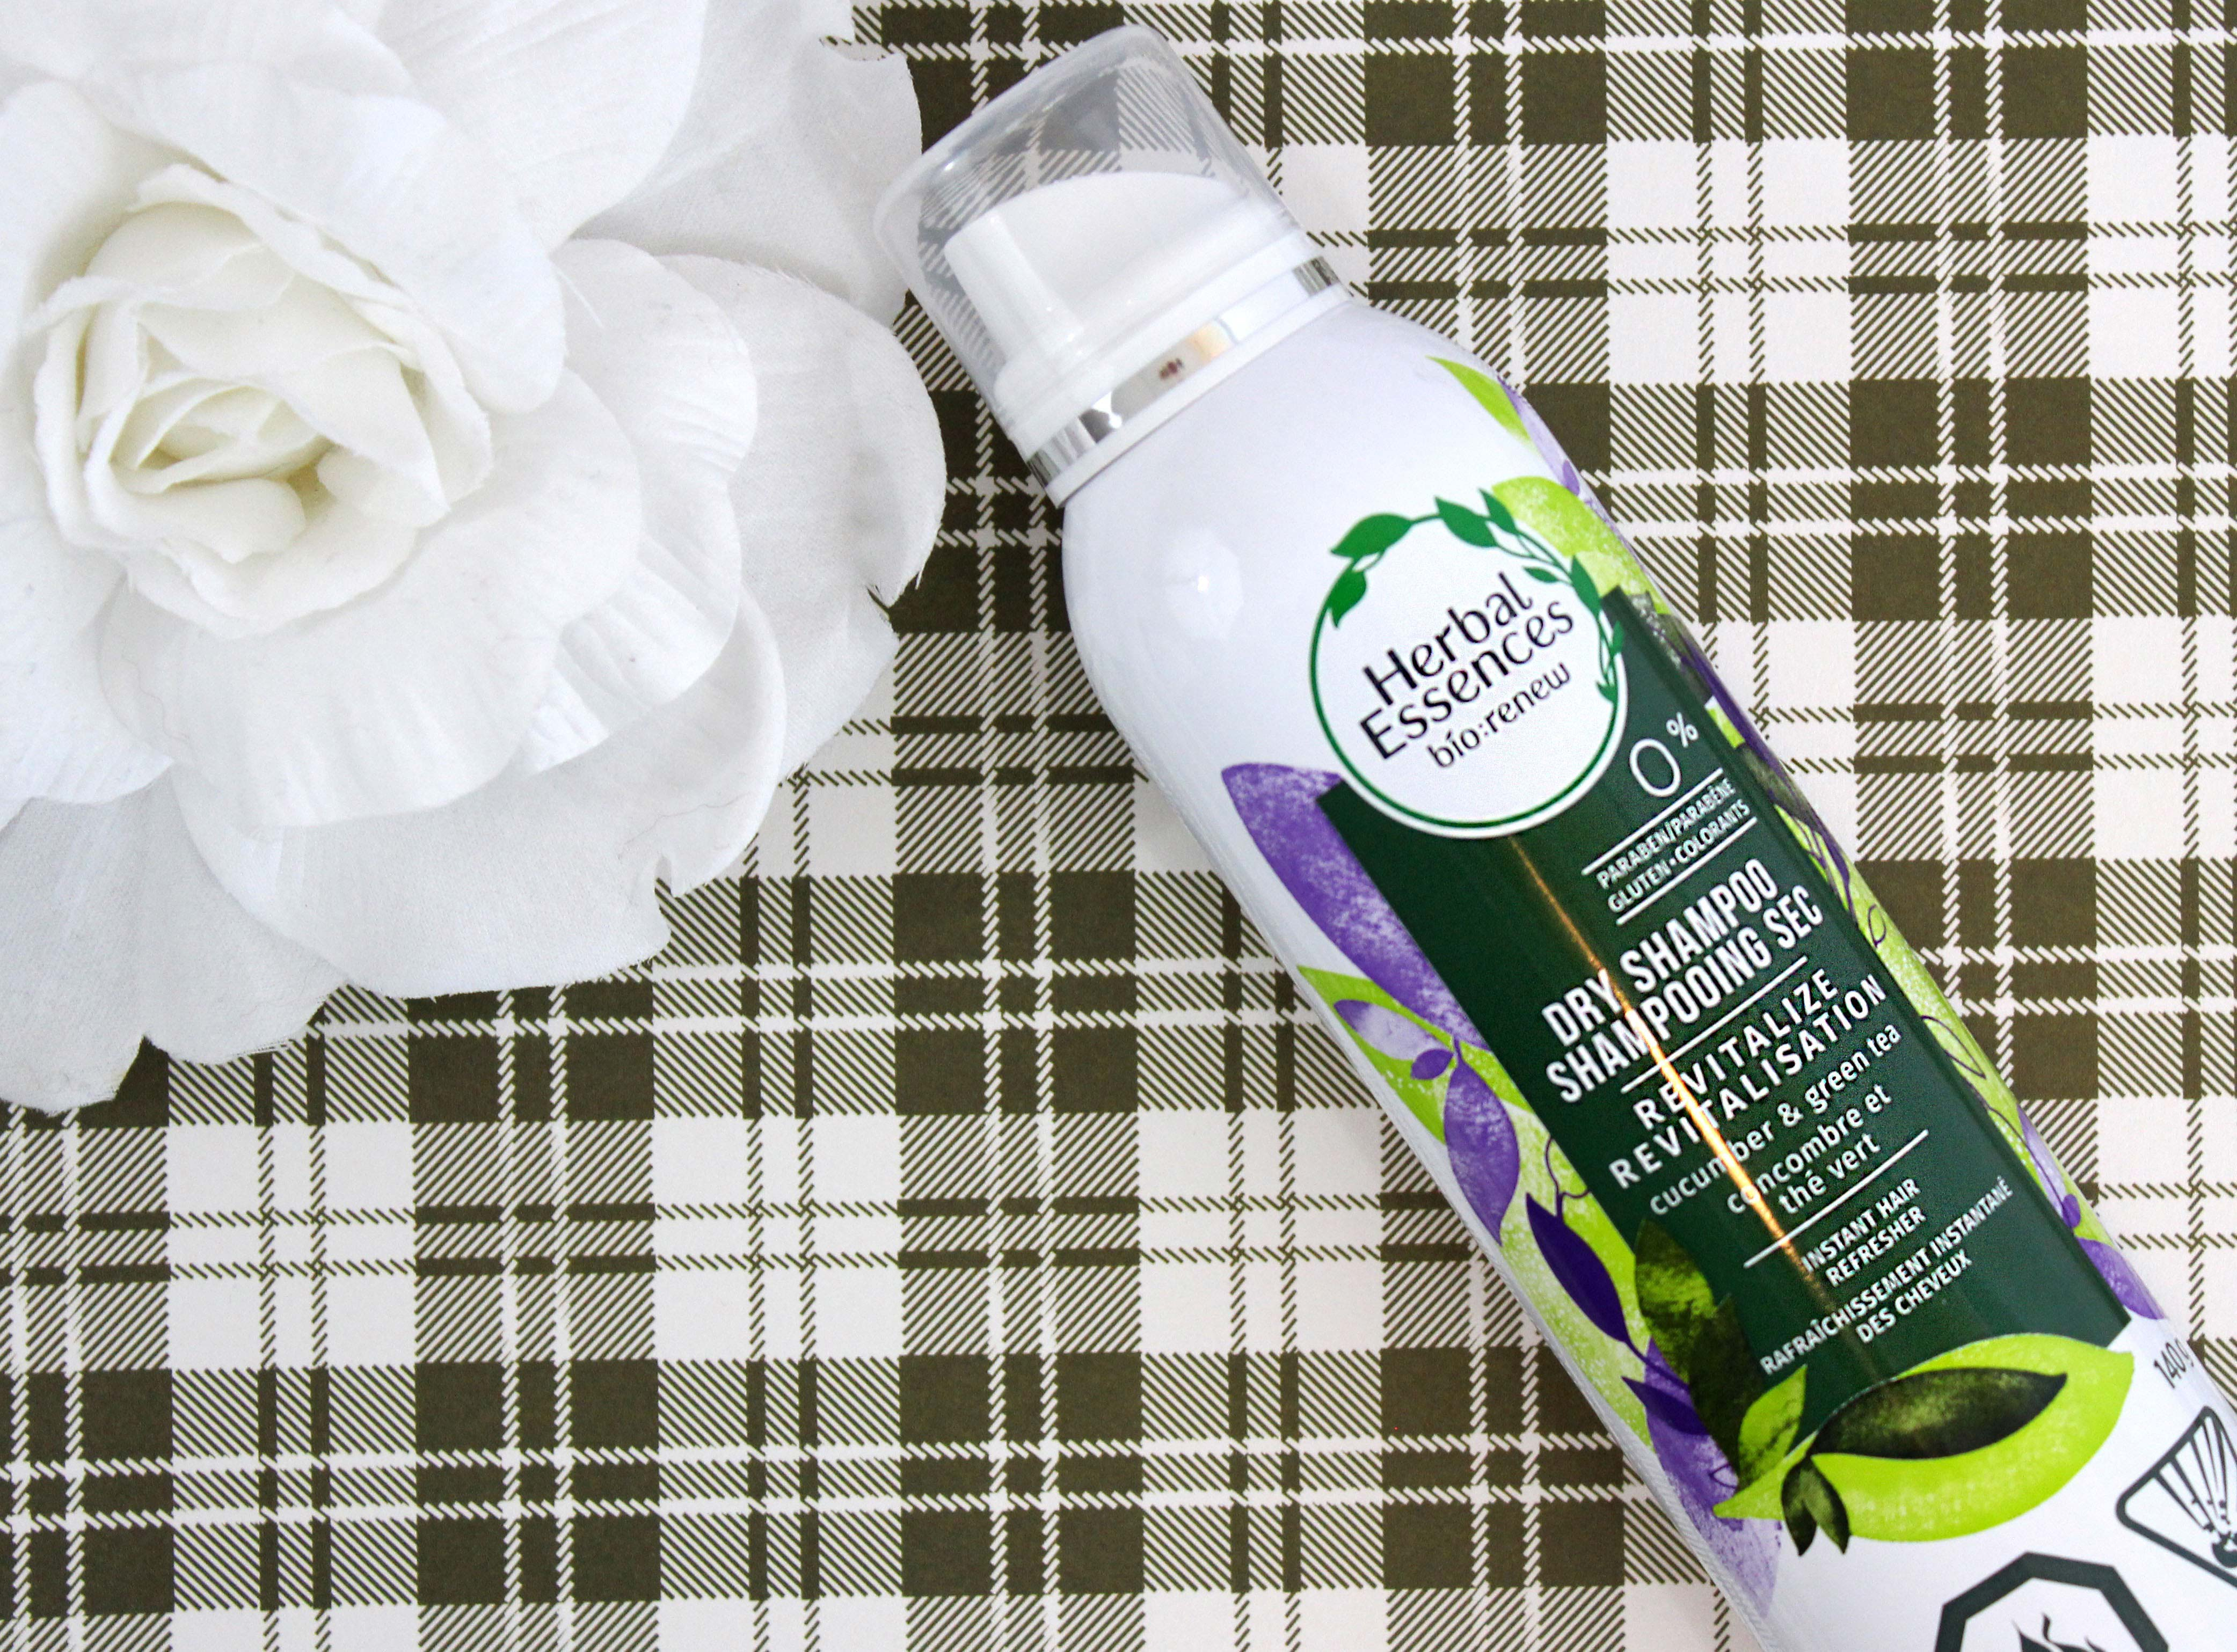 HERBAL ESSENCES BIO:RENEW DRY SHAMPOO CUCUMBER + GREEN TEA